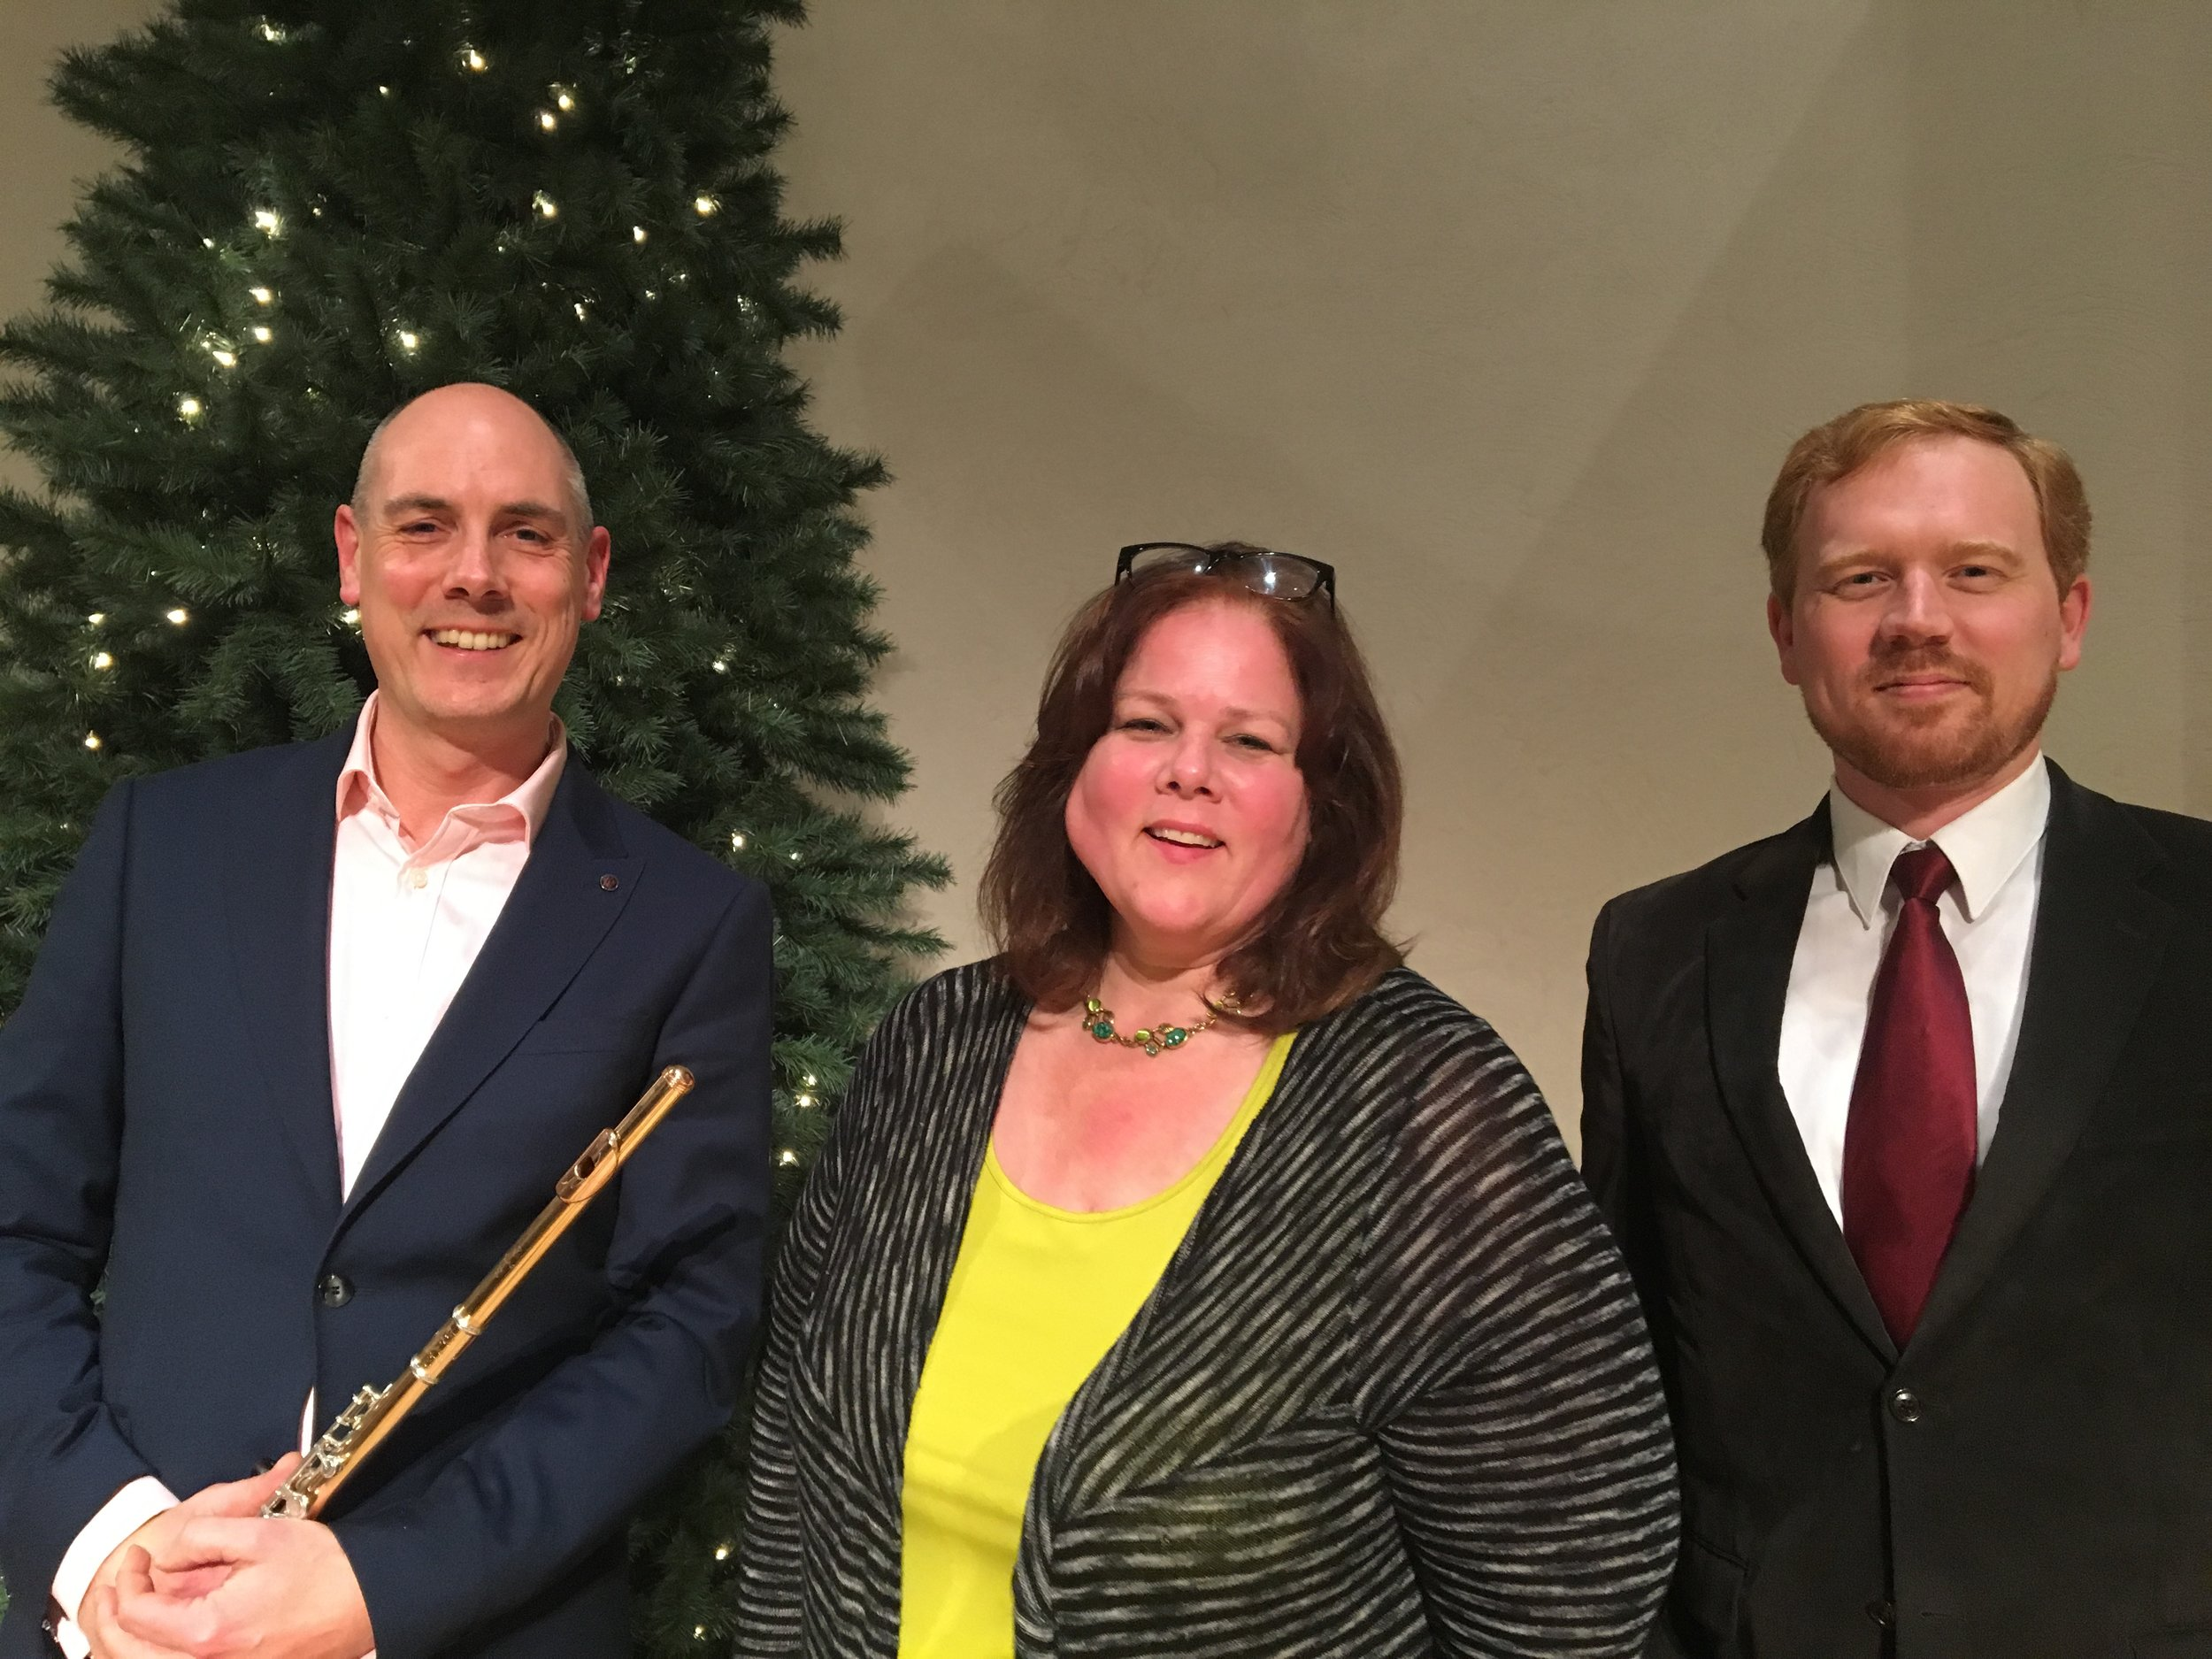 With Margaret Jane-Wray and Ivan Konev after our solo appearances at St.Croix Valley Symphony Orchestra Concert,December 2016